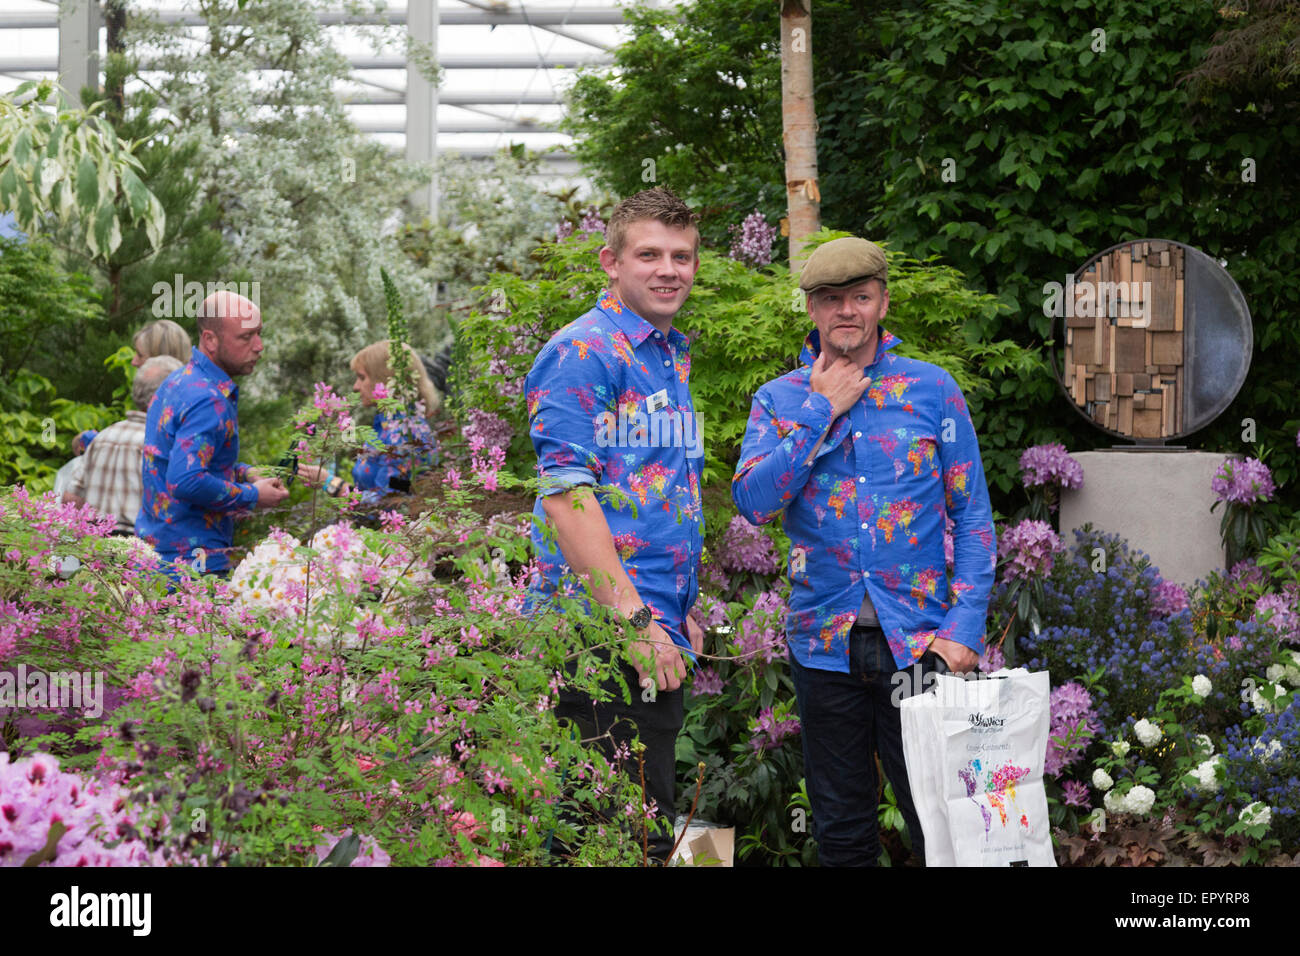 London, UK. 23 May 2015. Gardeners of Hillier Nurseries wait for the sell-off at 4pm. The 2015 RHS Chelsea Flower Stock Photo